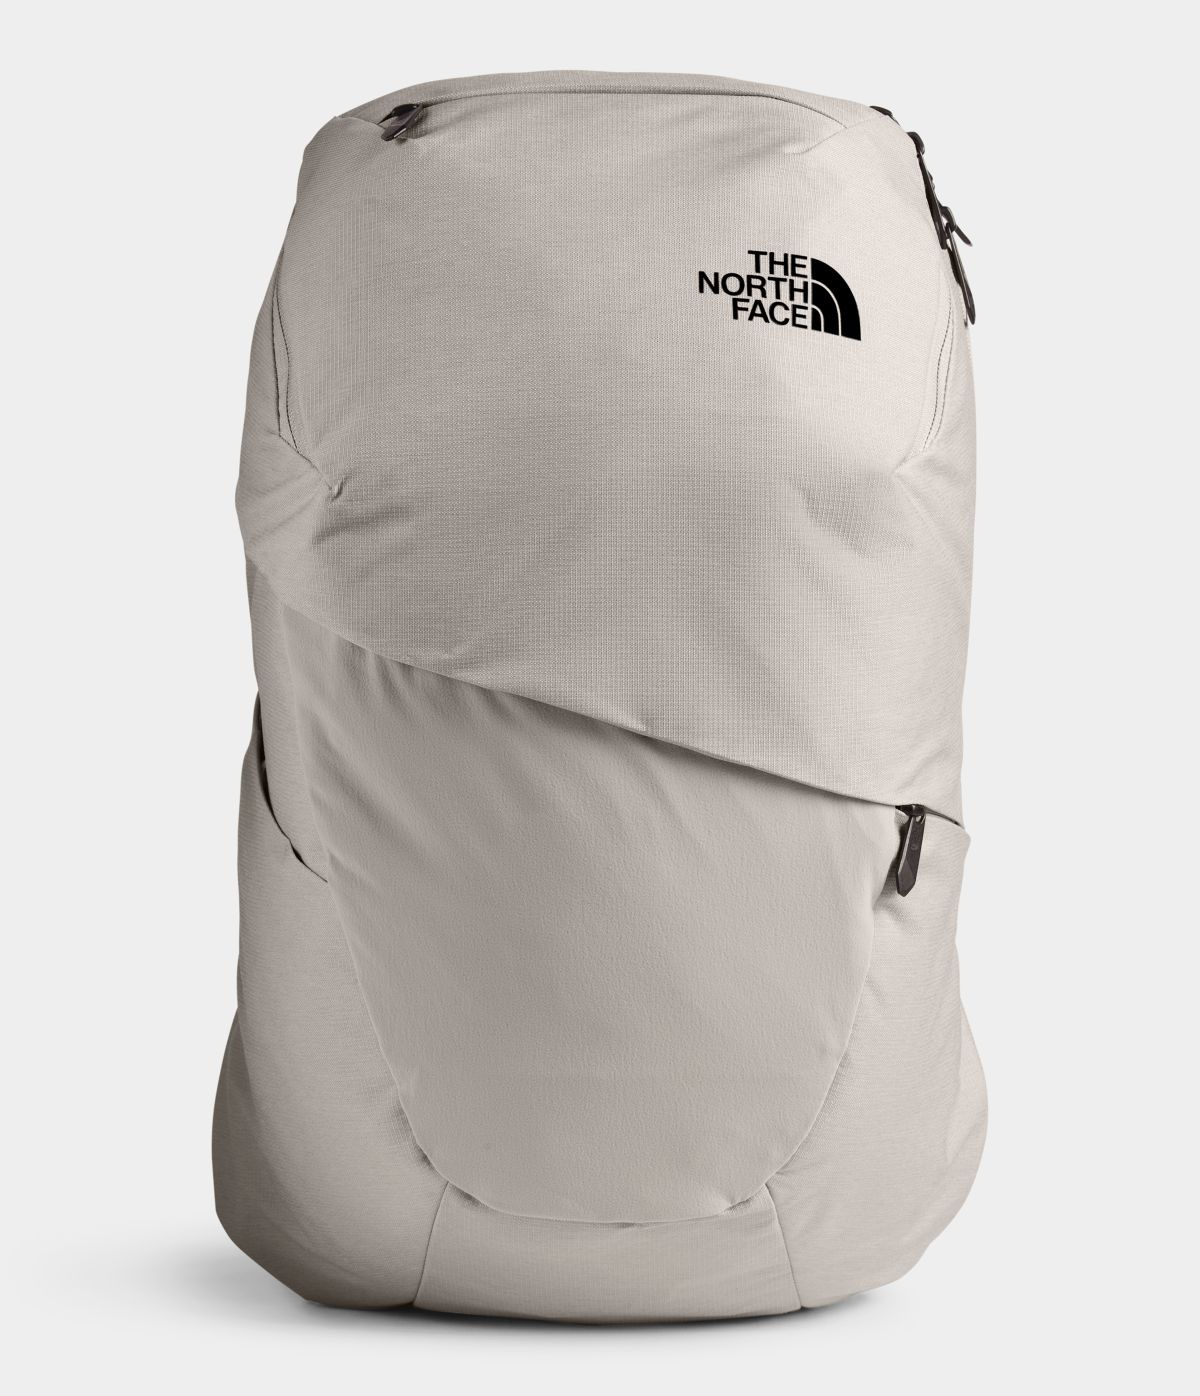 Women's The North Face Aurora Backpack in Dove Grey Dark Heather/Crockery Beige from front view